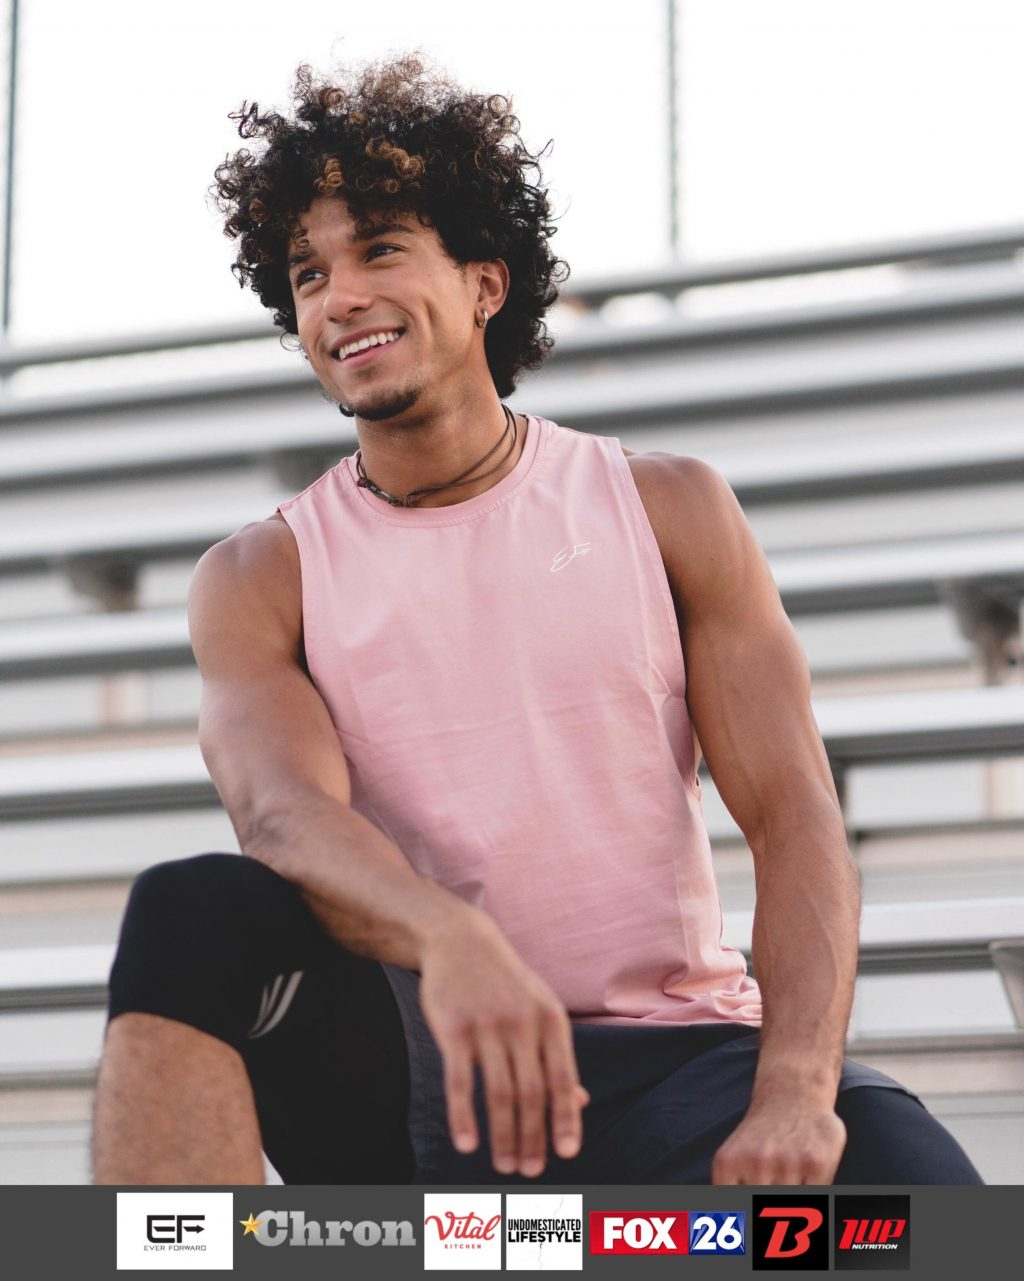 Personal Trainer Houston, Texas - Damon M